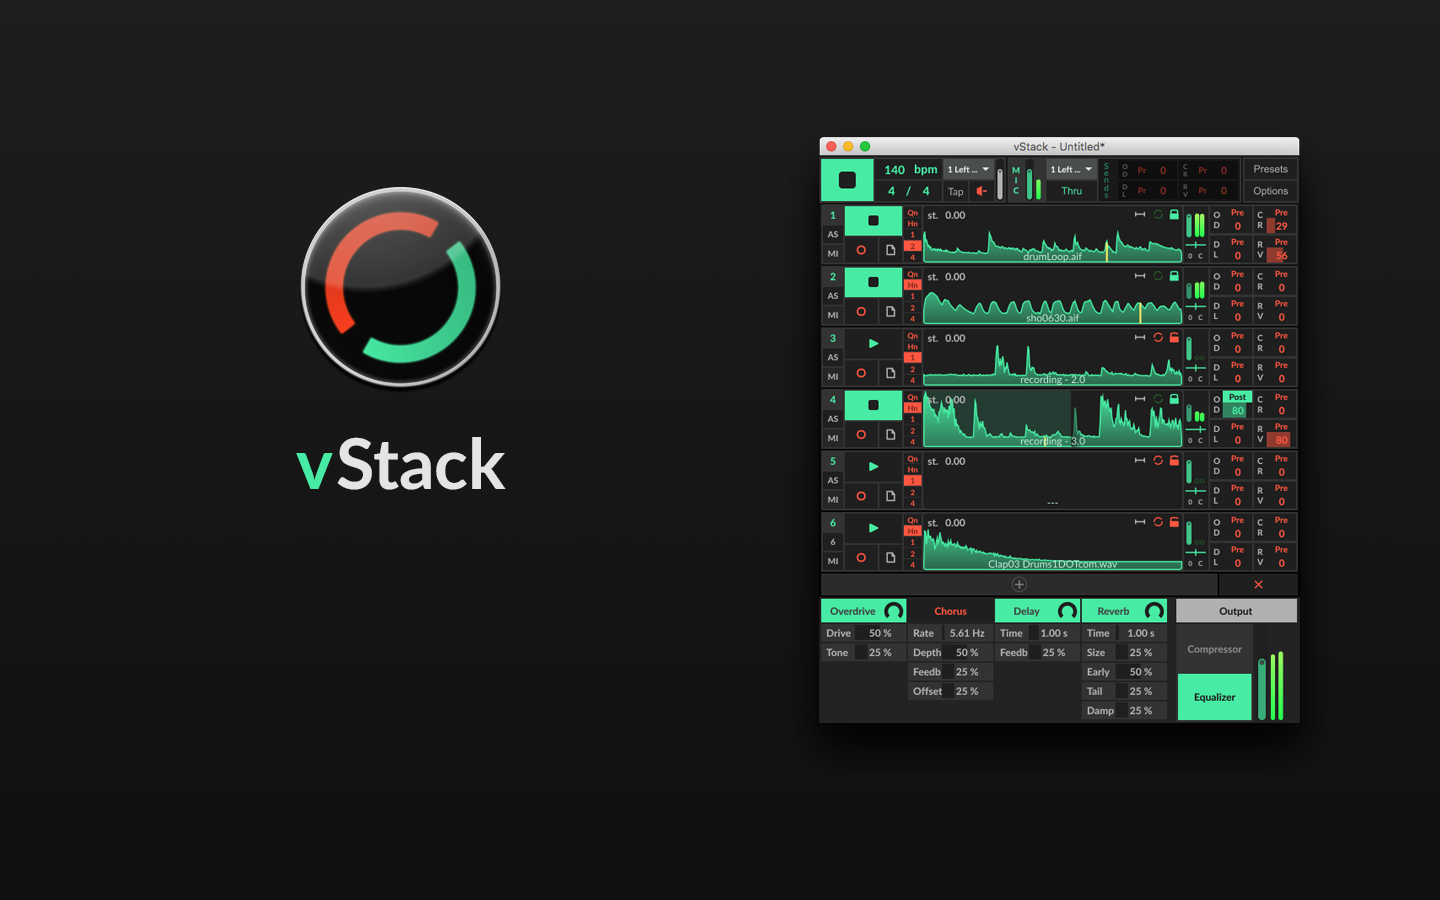 Vstack Is A Looper Application Build 100% With Max - Evony Ads , HD Wallpaper & Backgrounds